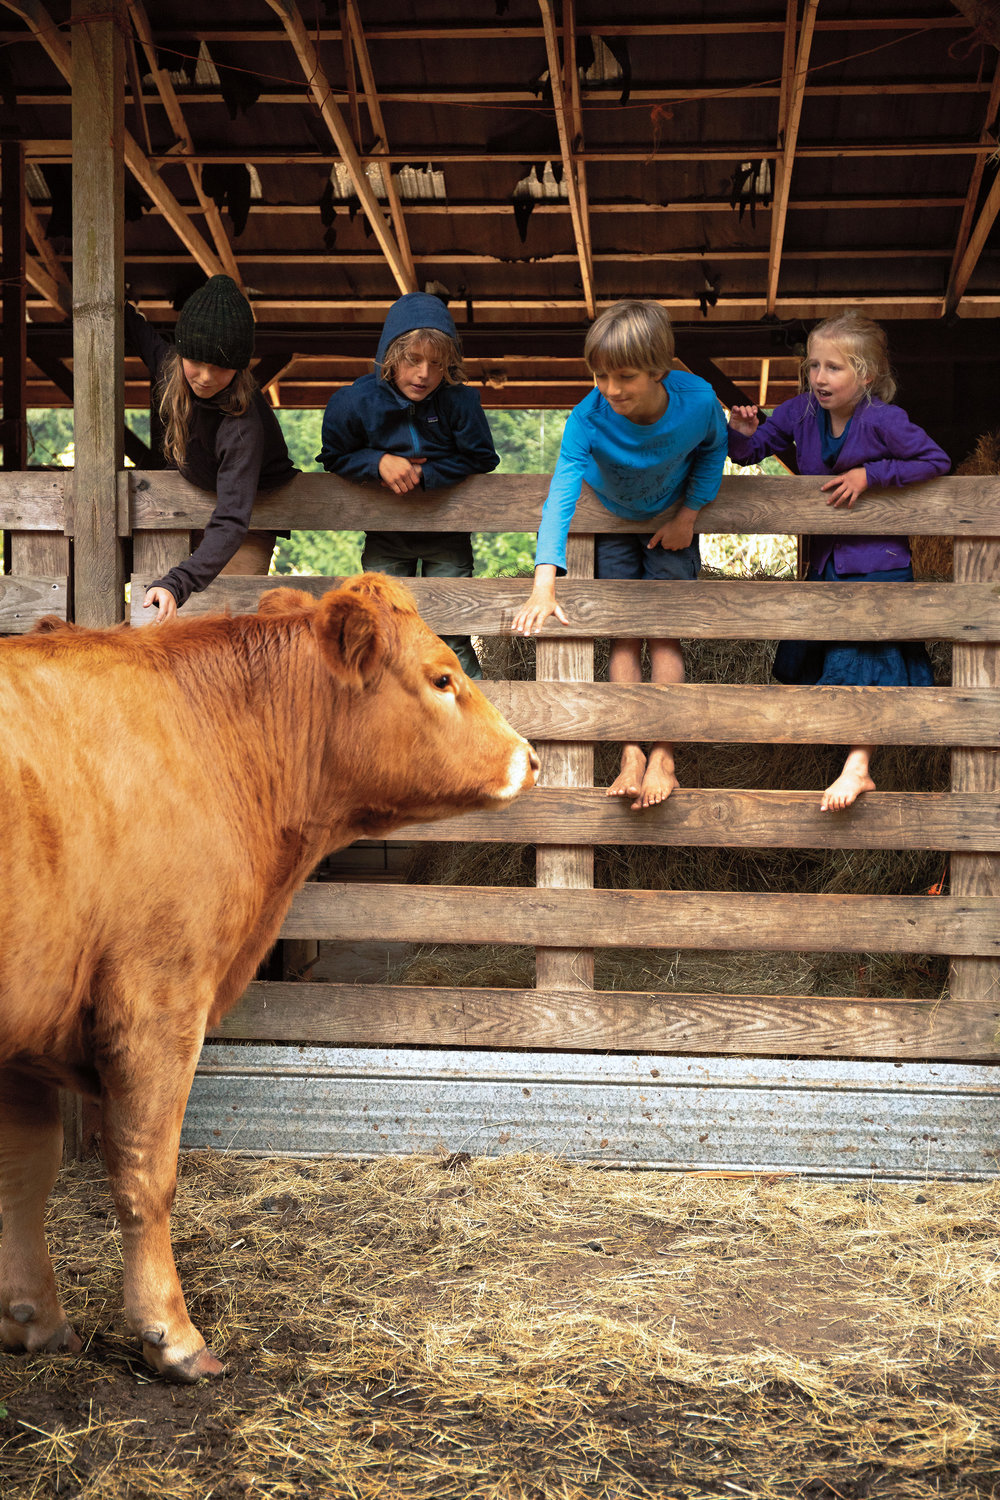 Kids and cows.